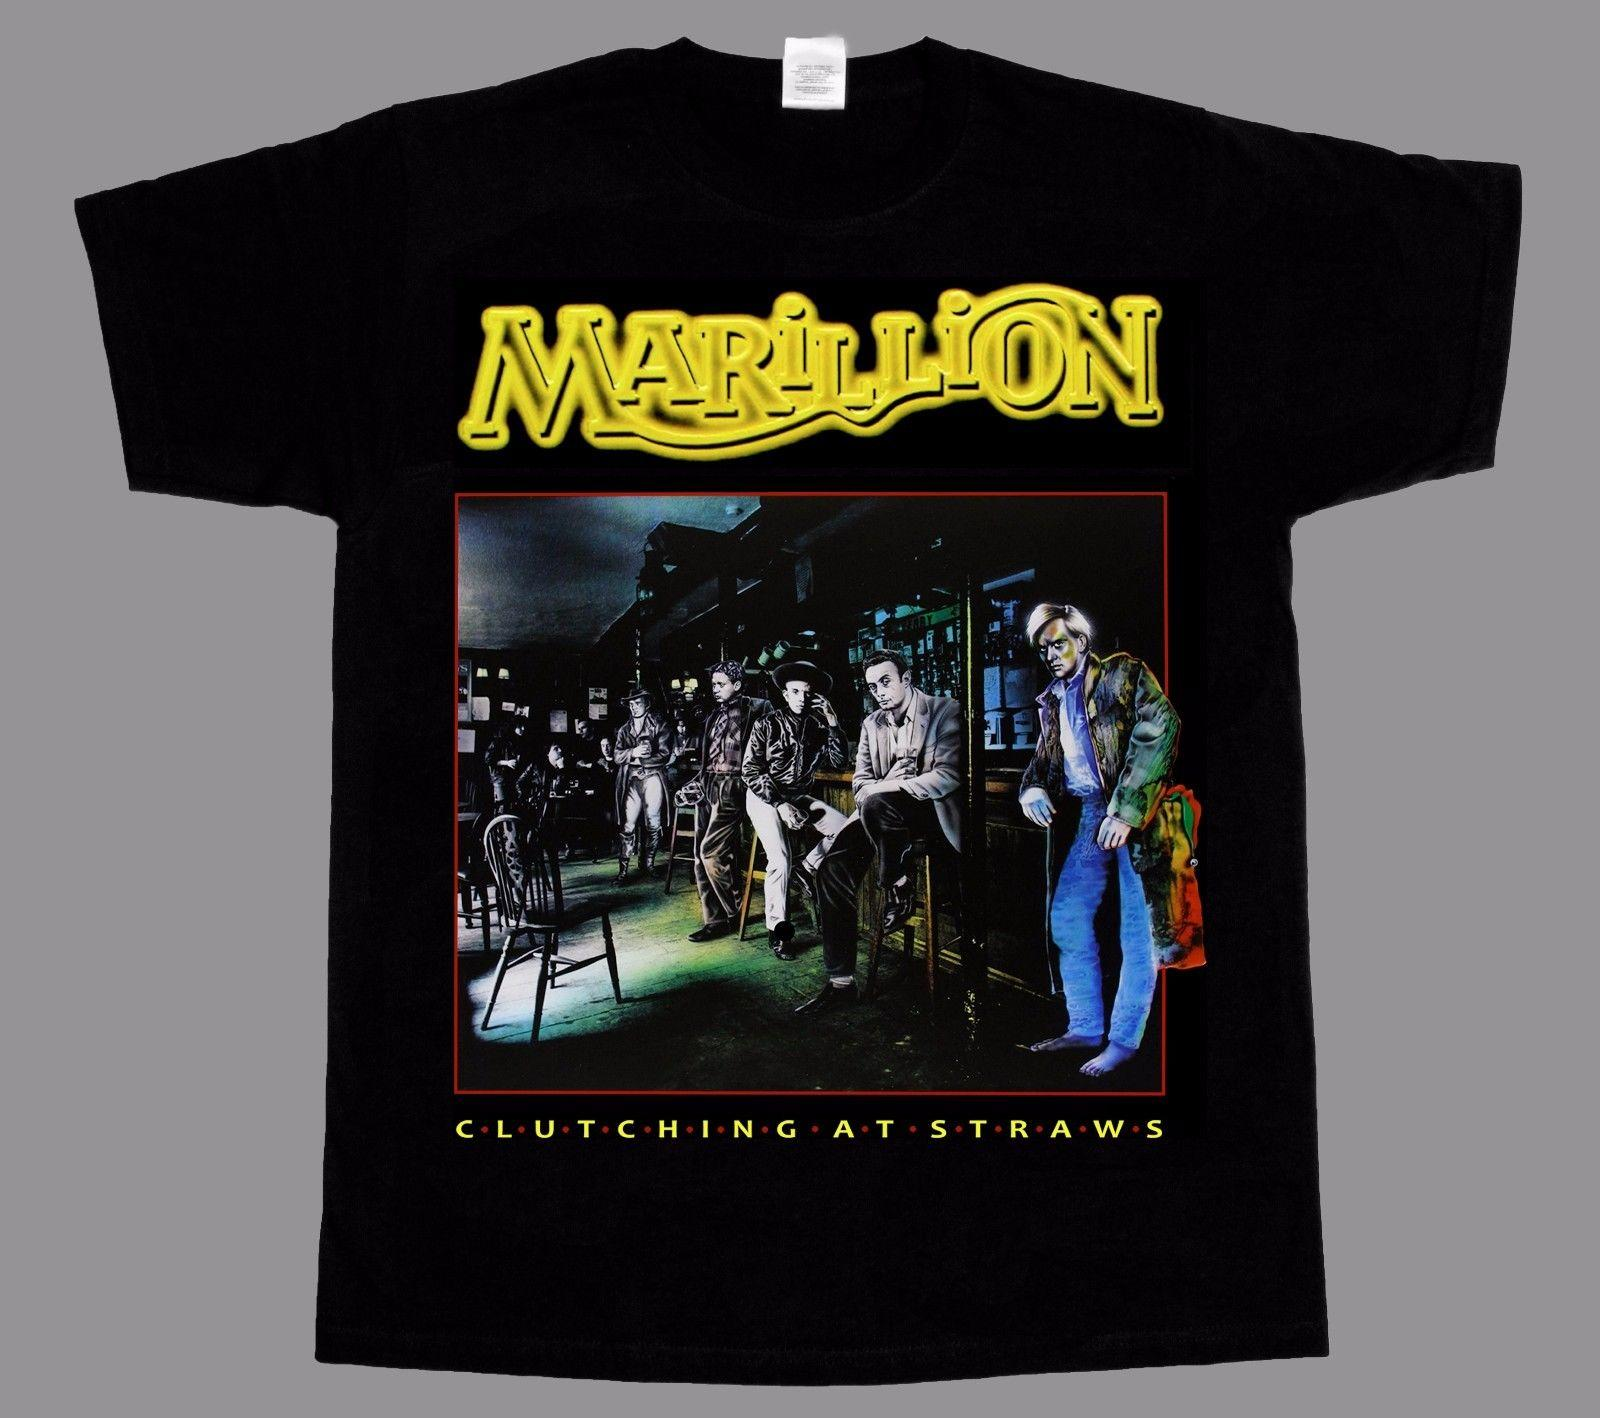 30e40ffac13 MARILLION CLUTCHING AT STRAWS NEW BLACK T SHIRT Mens 2018 Fashion Brand T  Shirt O Neck 100%cotton T Shirt Comical T Shirts T Shirt With From  Beautifultee